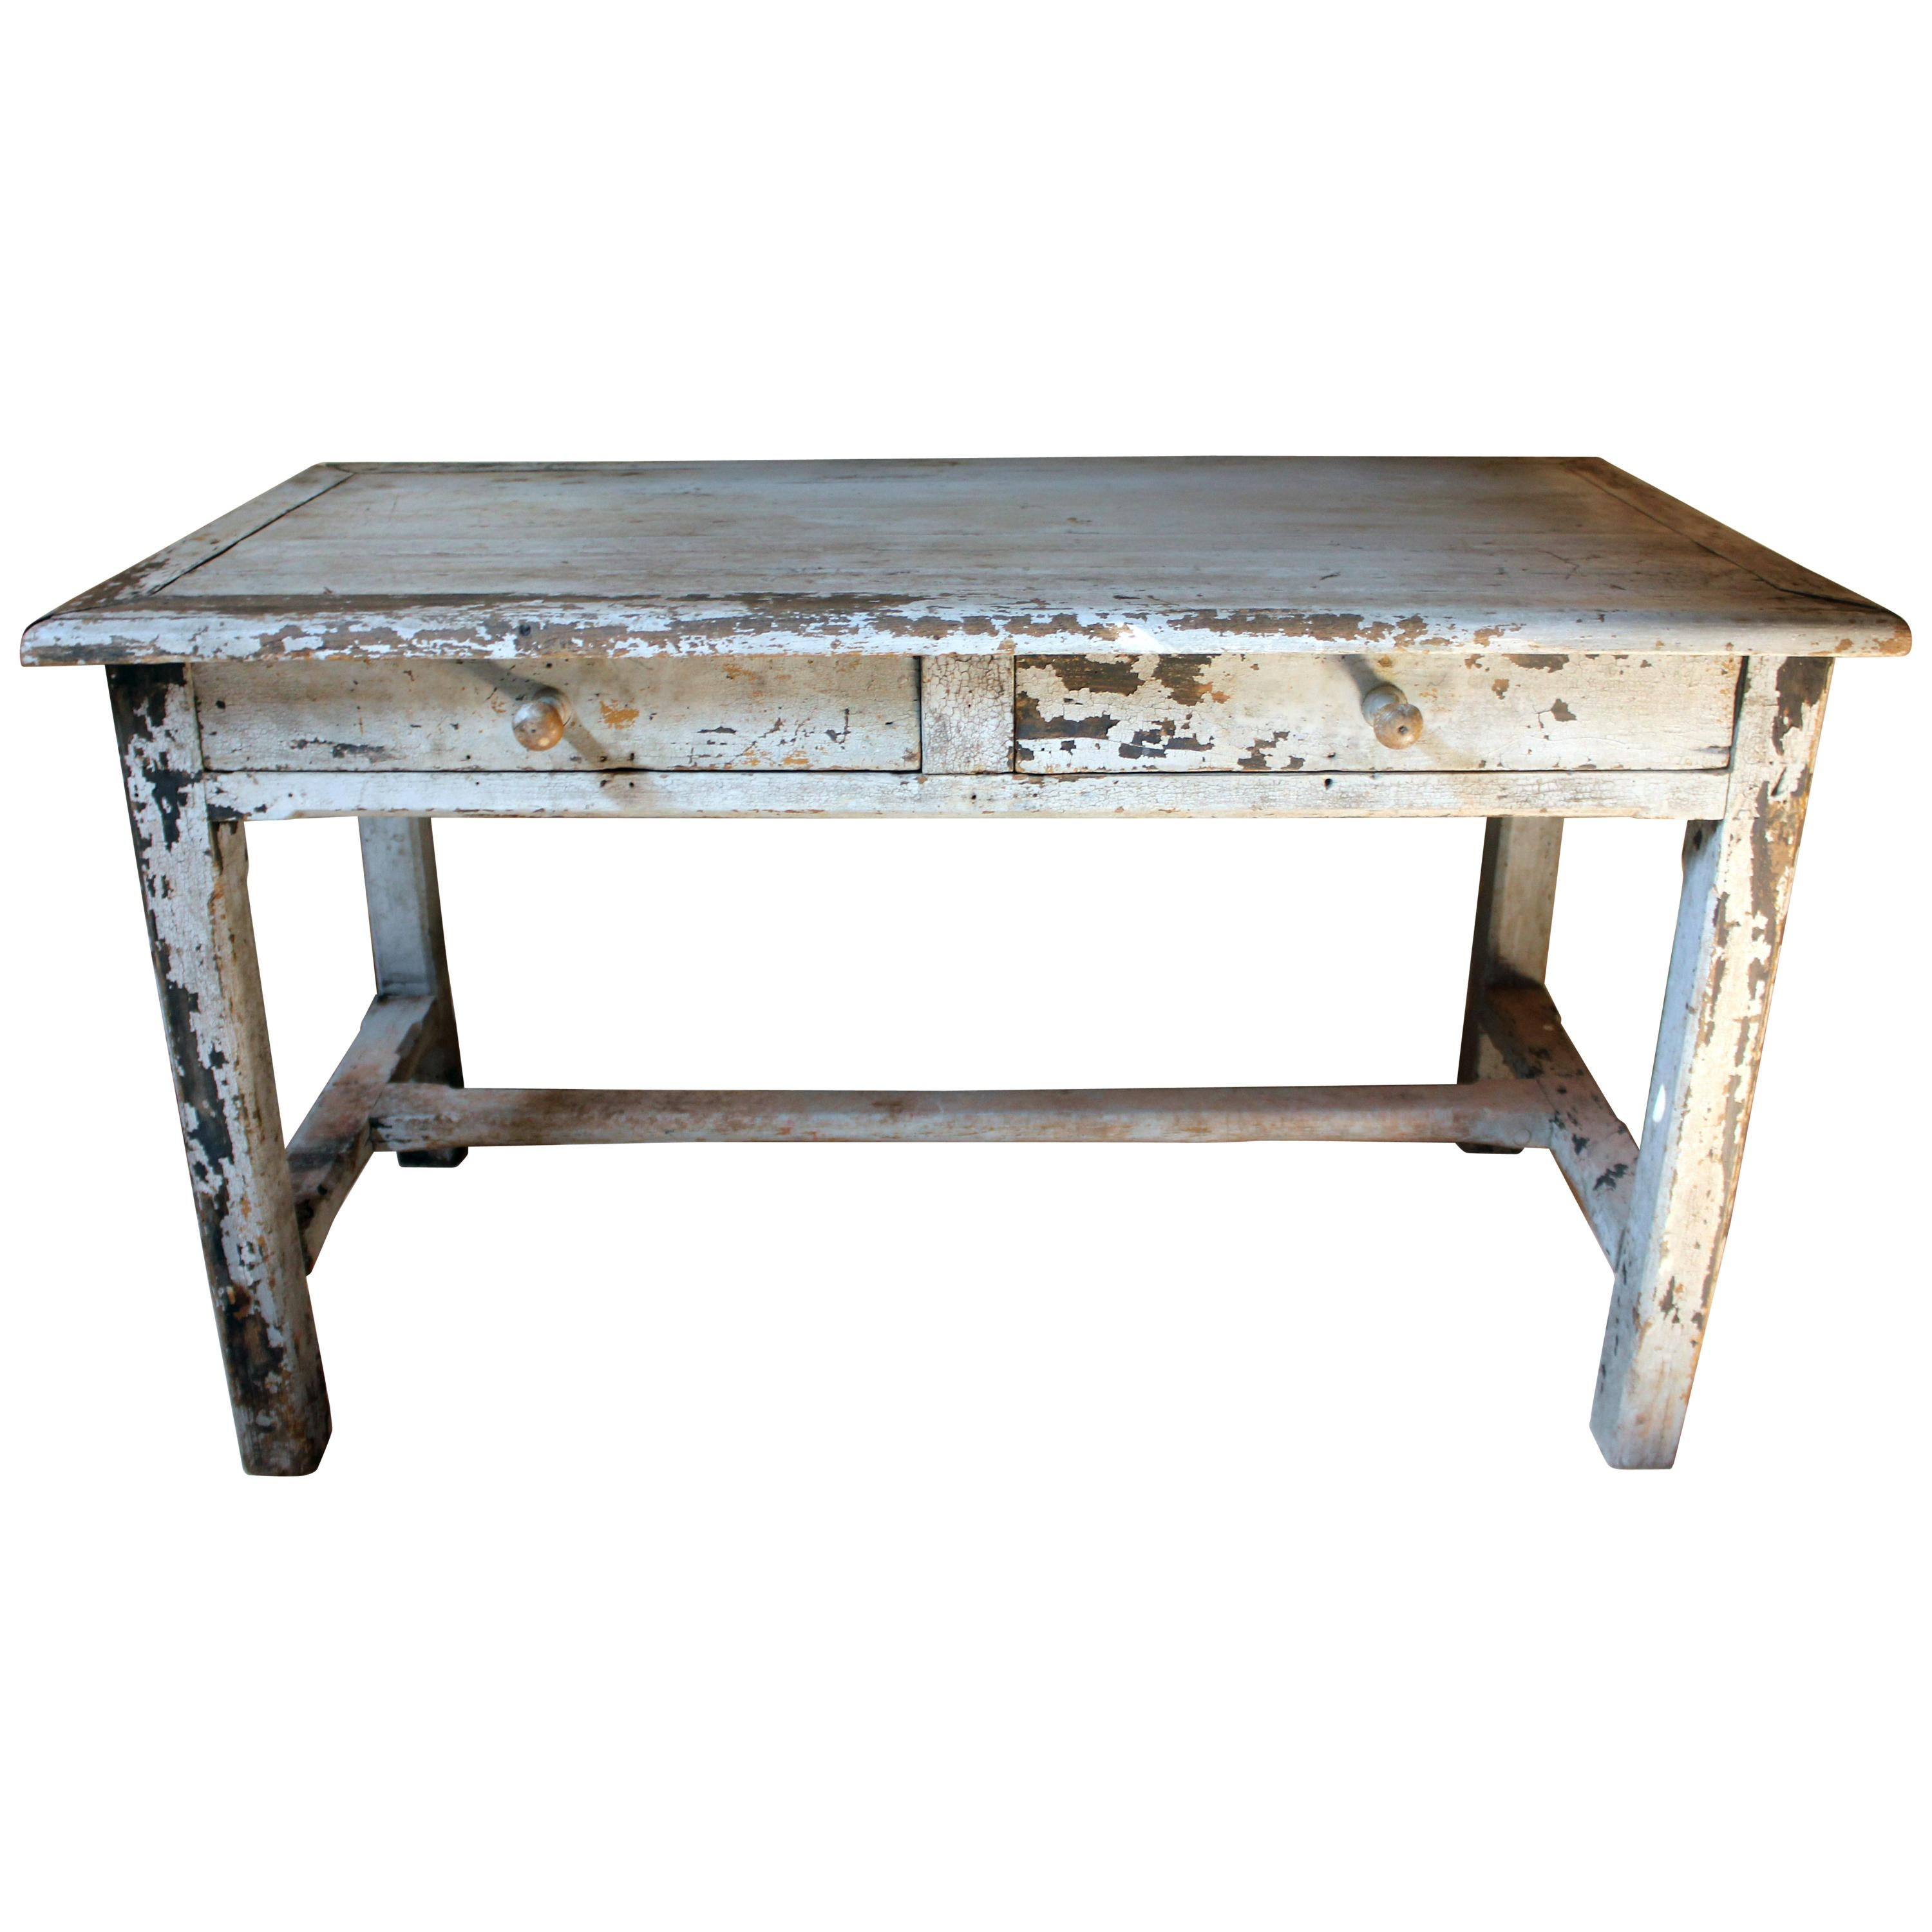 French Provincial Painted Pine Side Table From A Potters Studio, Circa 1900